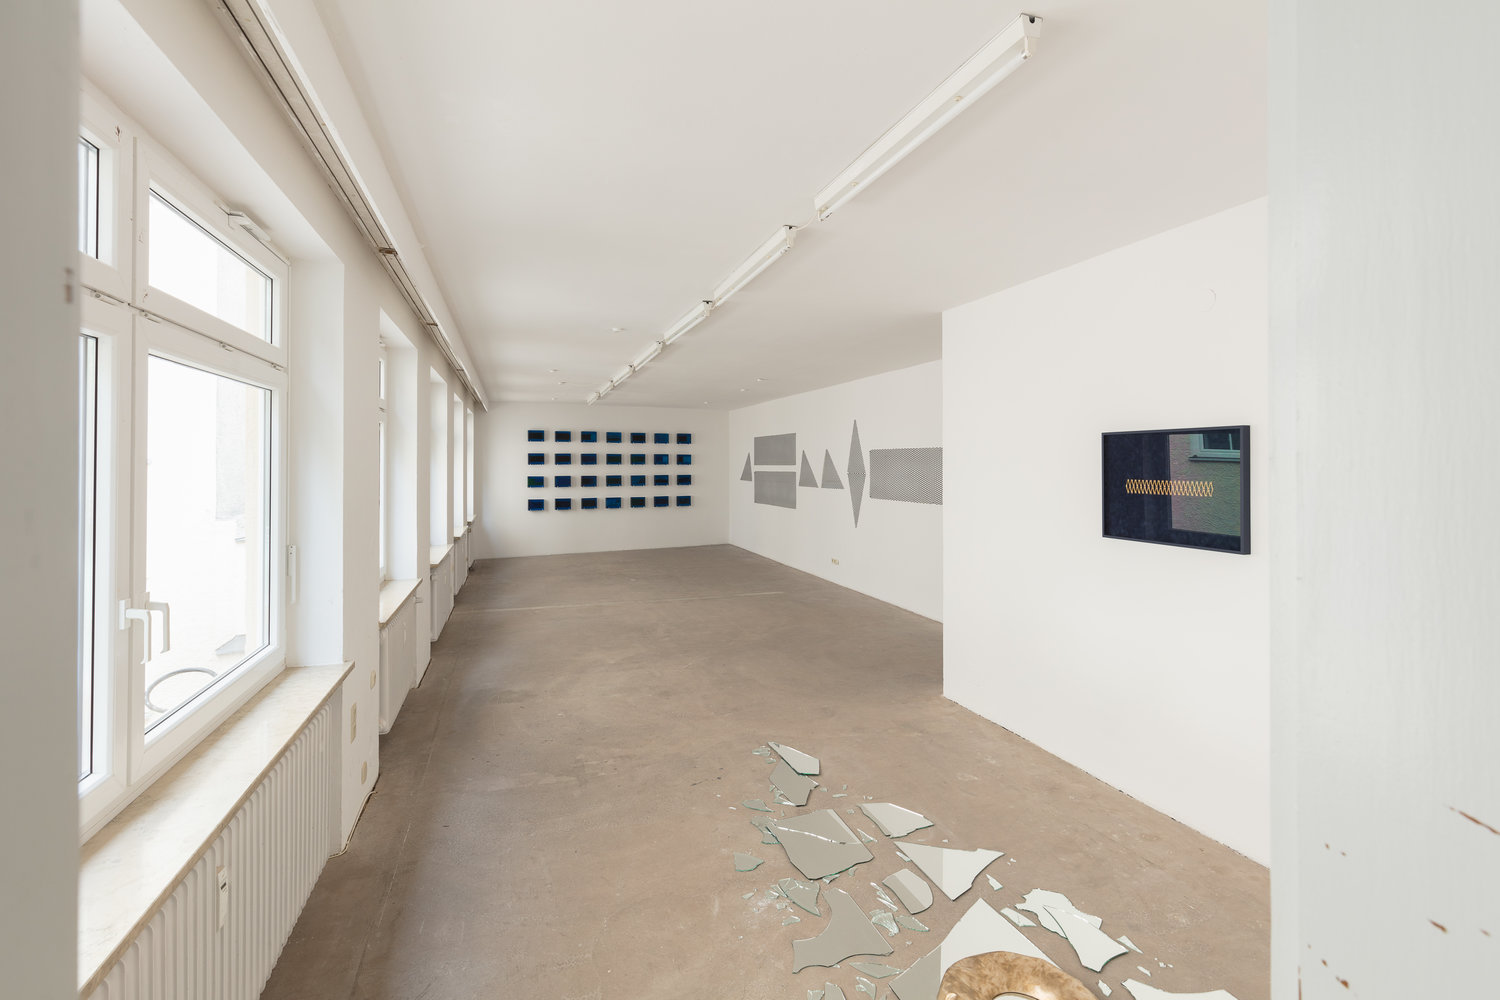 Solo Exhibition View at Kunstraum München in 2018